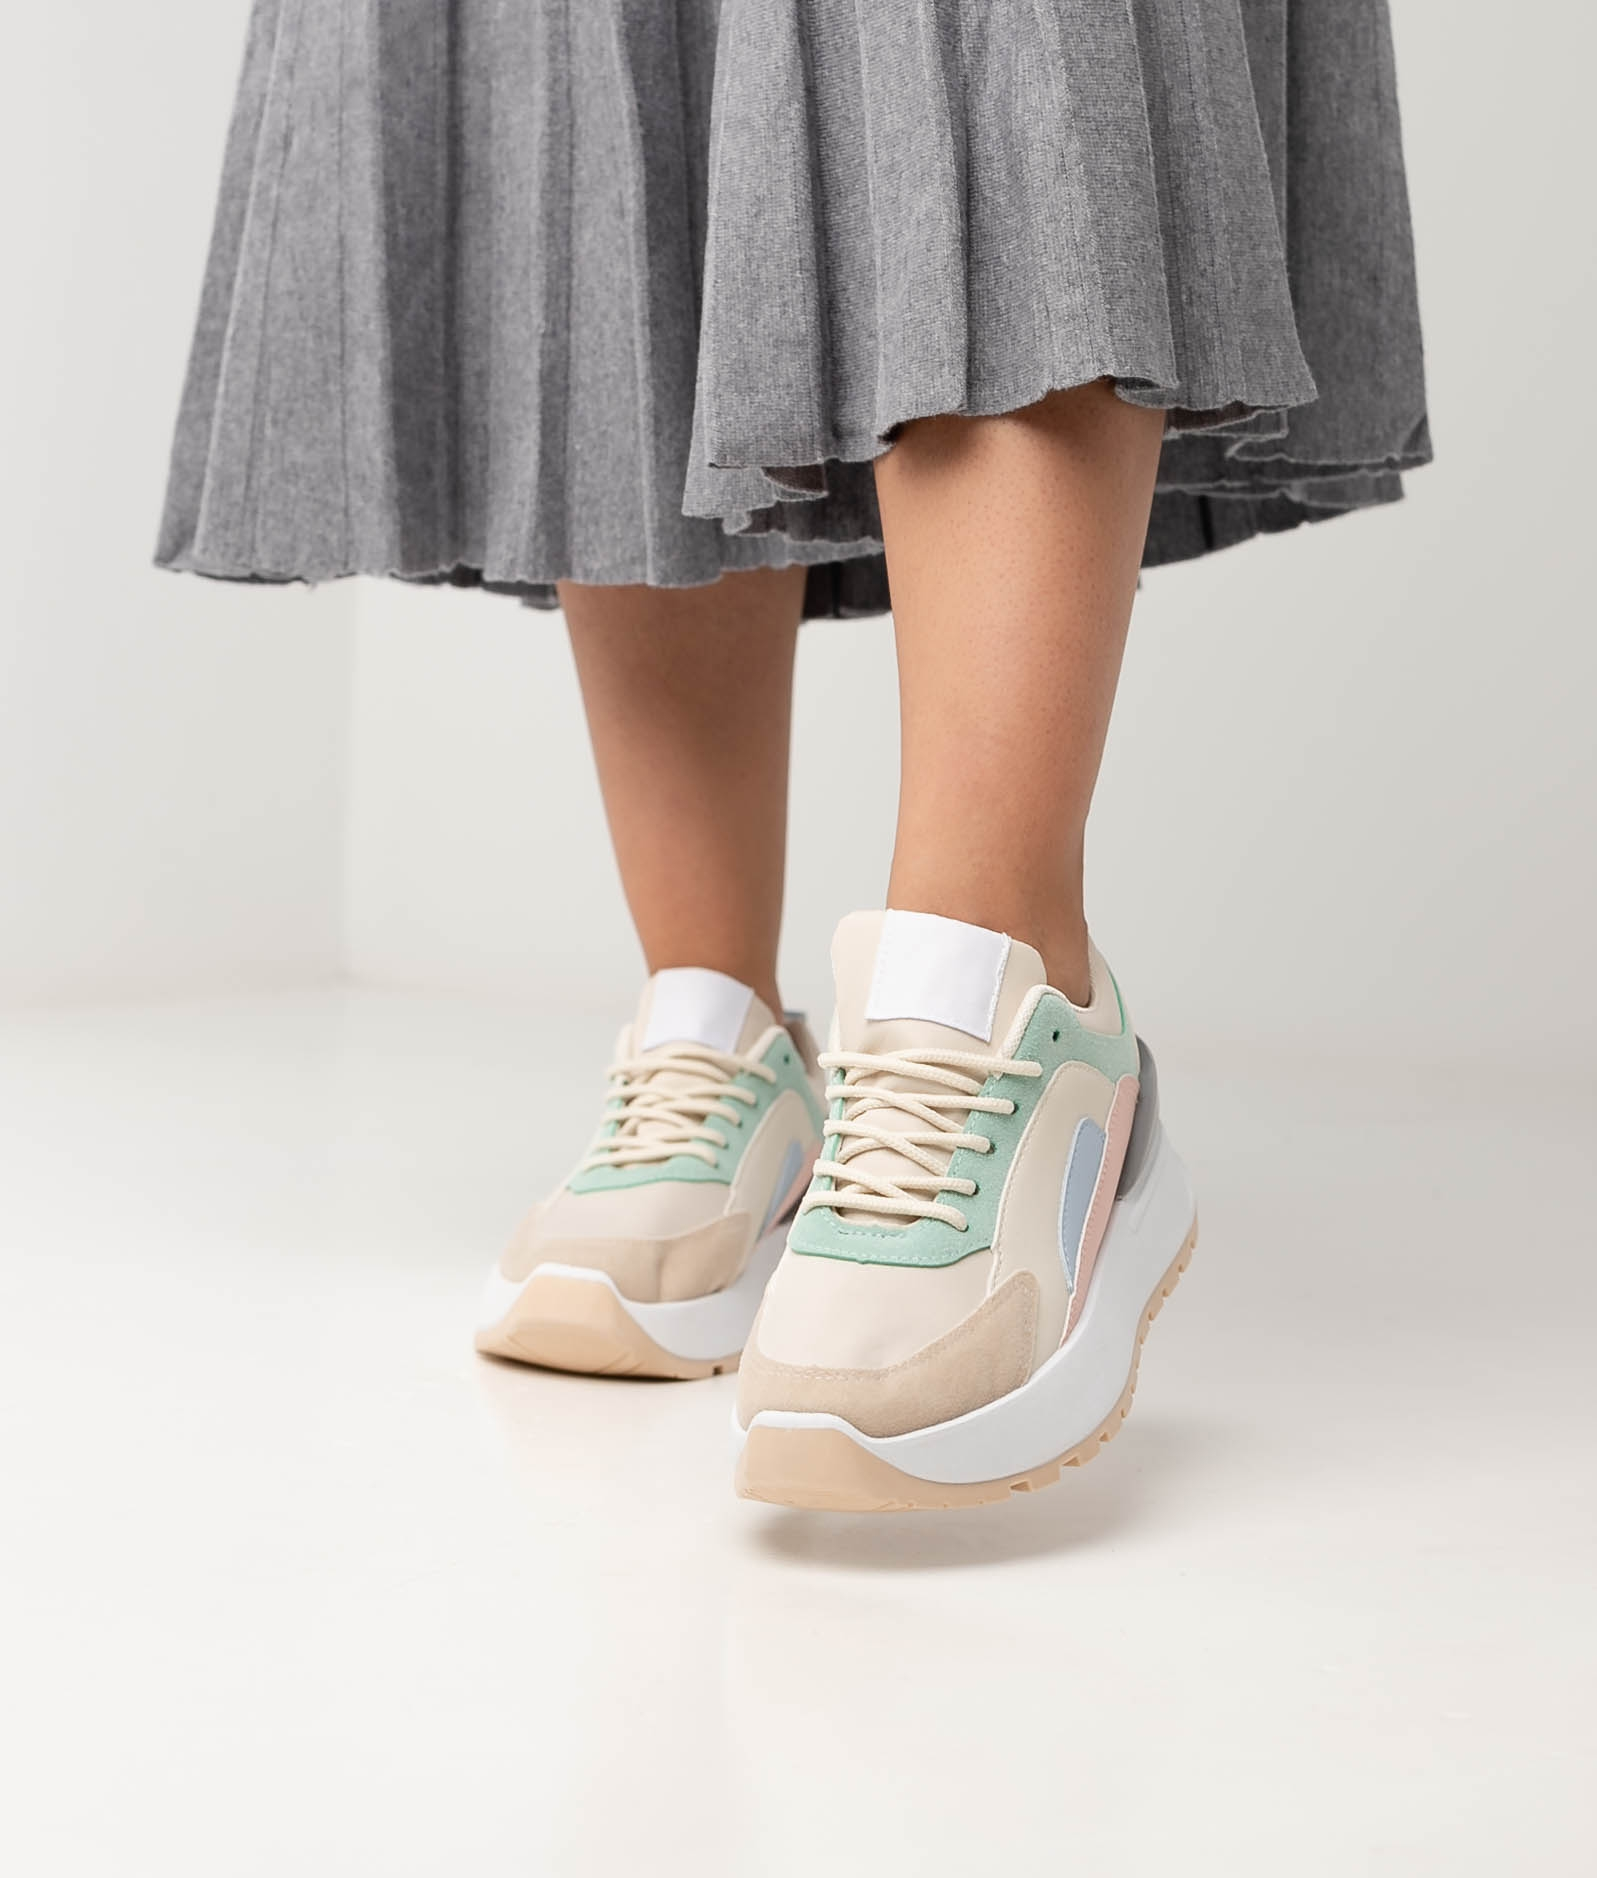 CADRE SNEAKERS - BLUE